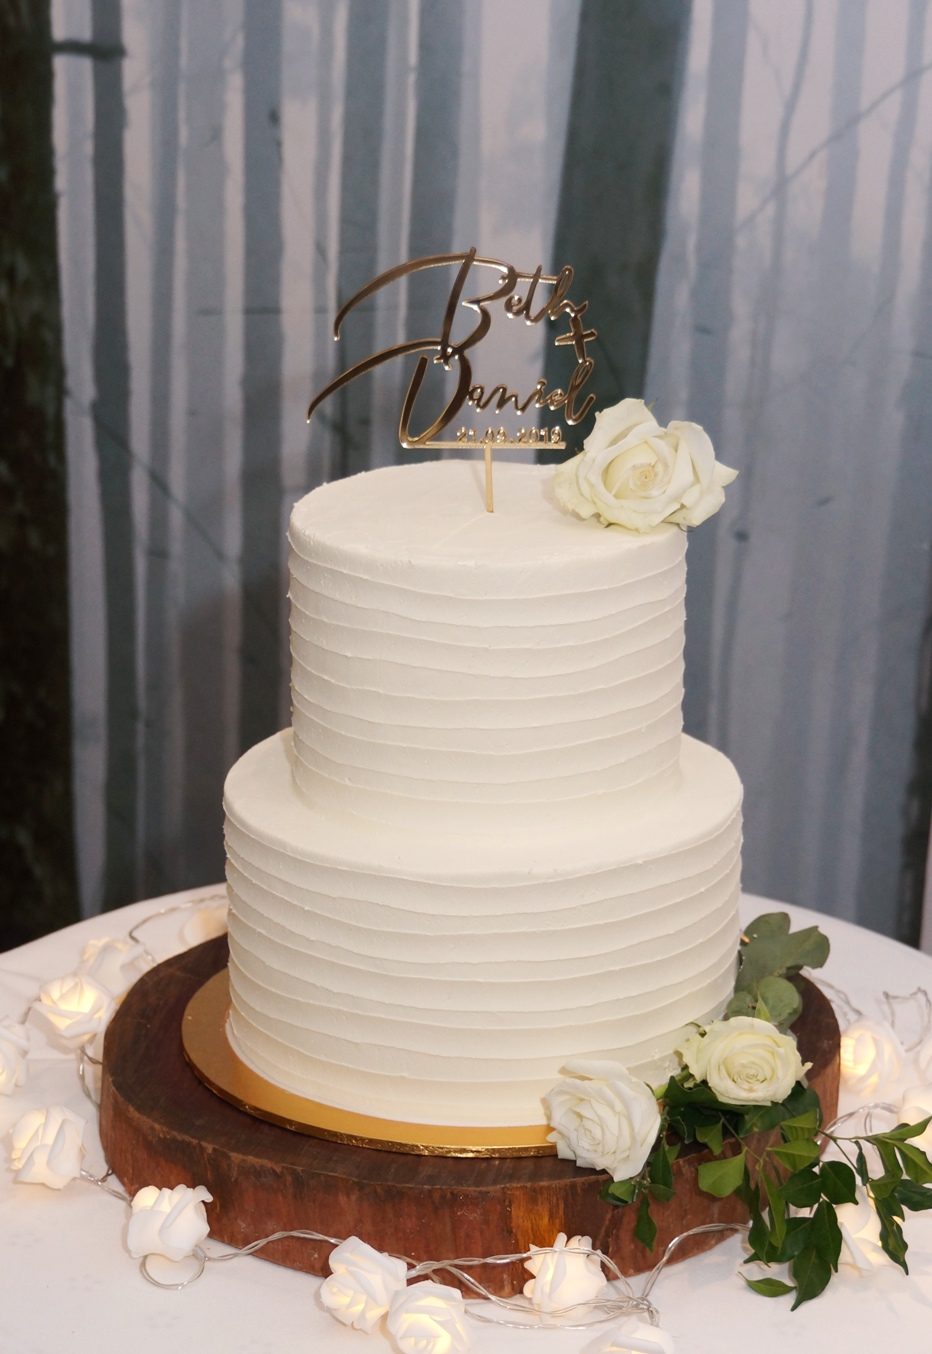 2 Tier Lined buttercream with fresh whit